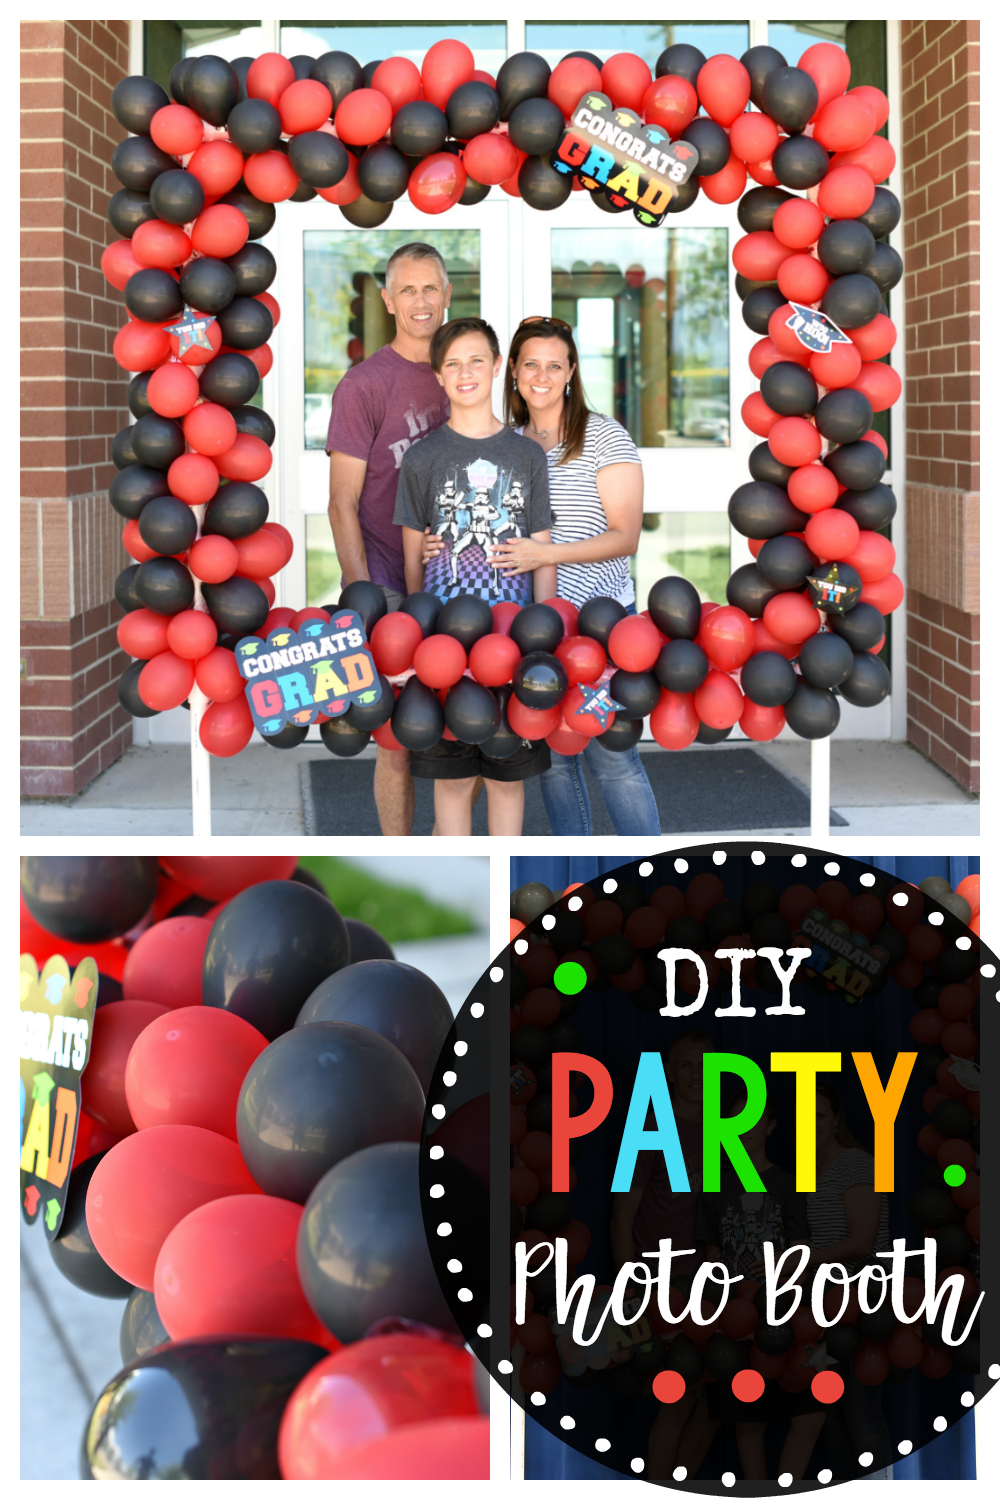 DIY Party Photo Booth with Balloons DIY Party Photo Booth-This balloon photo booth is perfect for any party or special occasion! Graduation, birthdays, weddings or any fun event. Create this photo booth with these step by step instructions and cover it with balloons for the best photo booth ever!